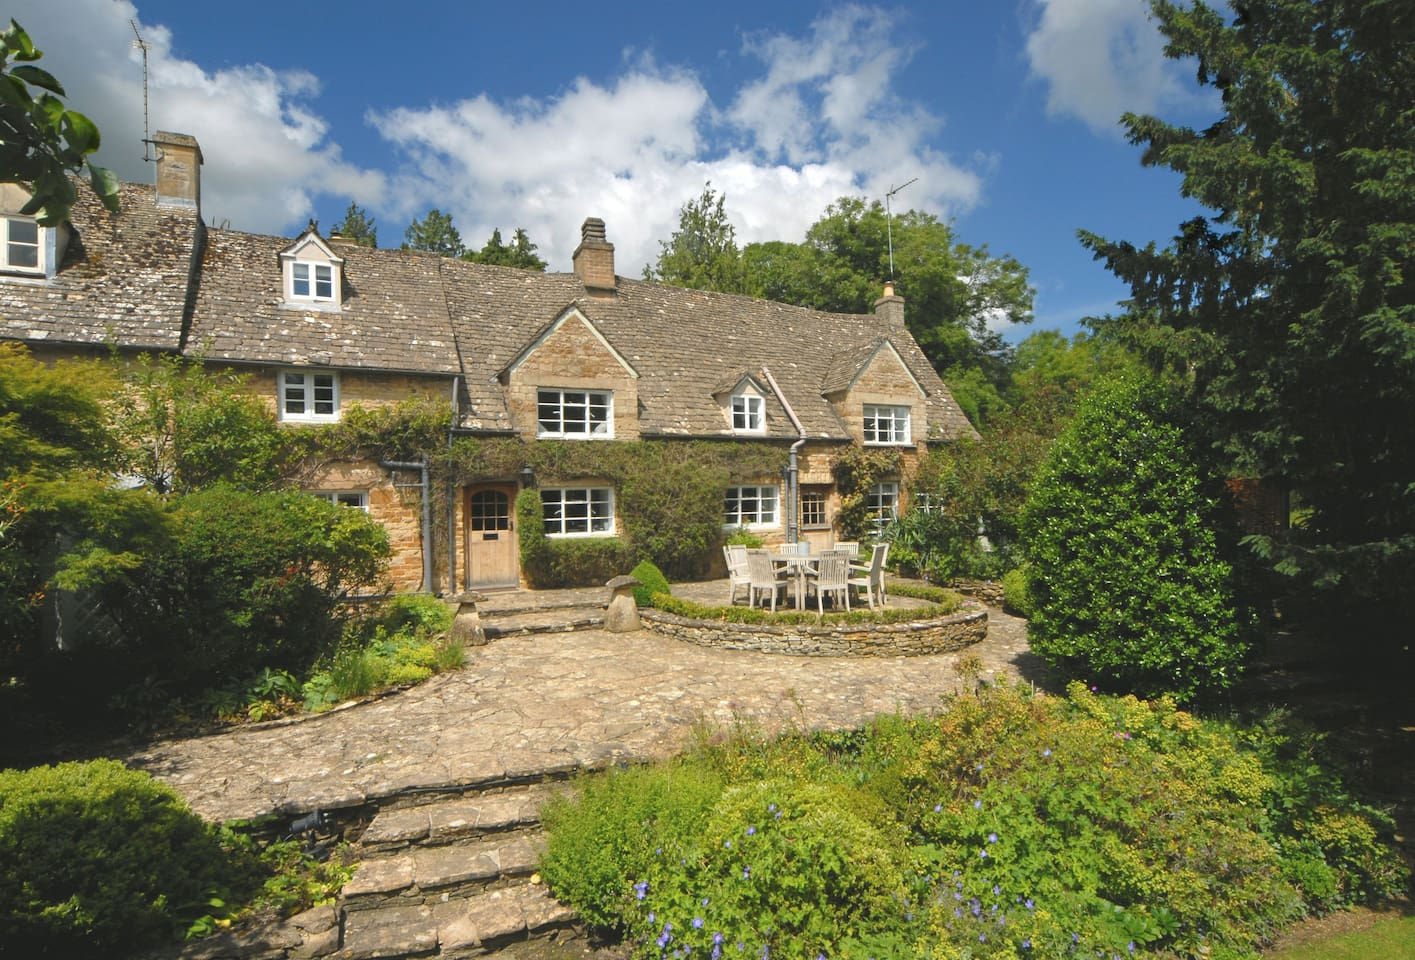 Top Cottage is a beautiful, well presented property dating back to the 1800's